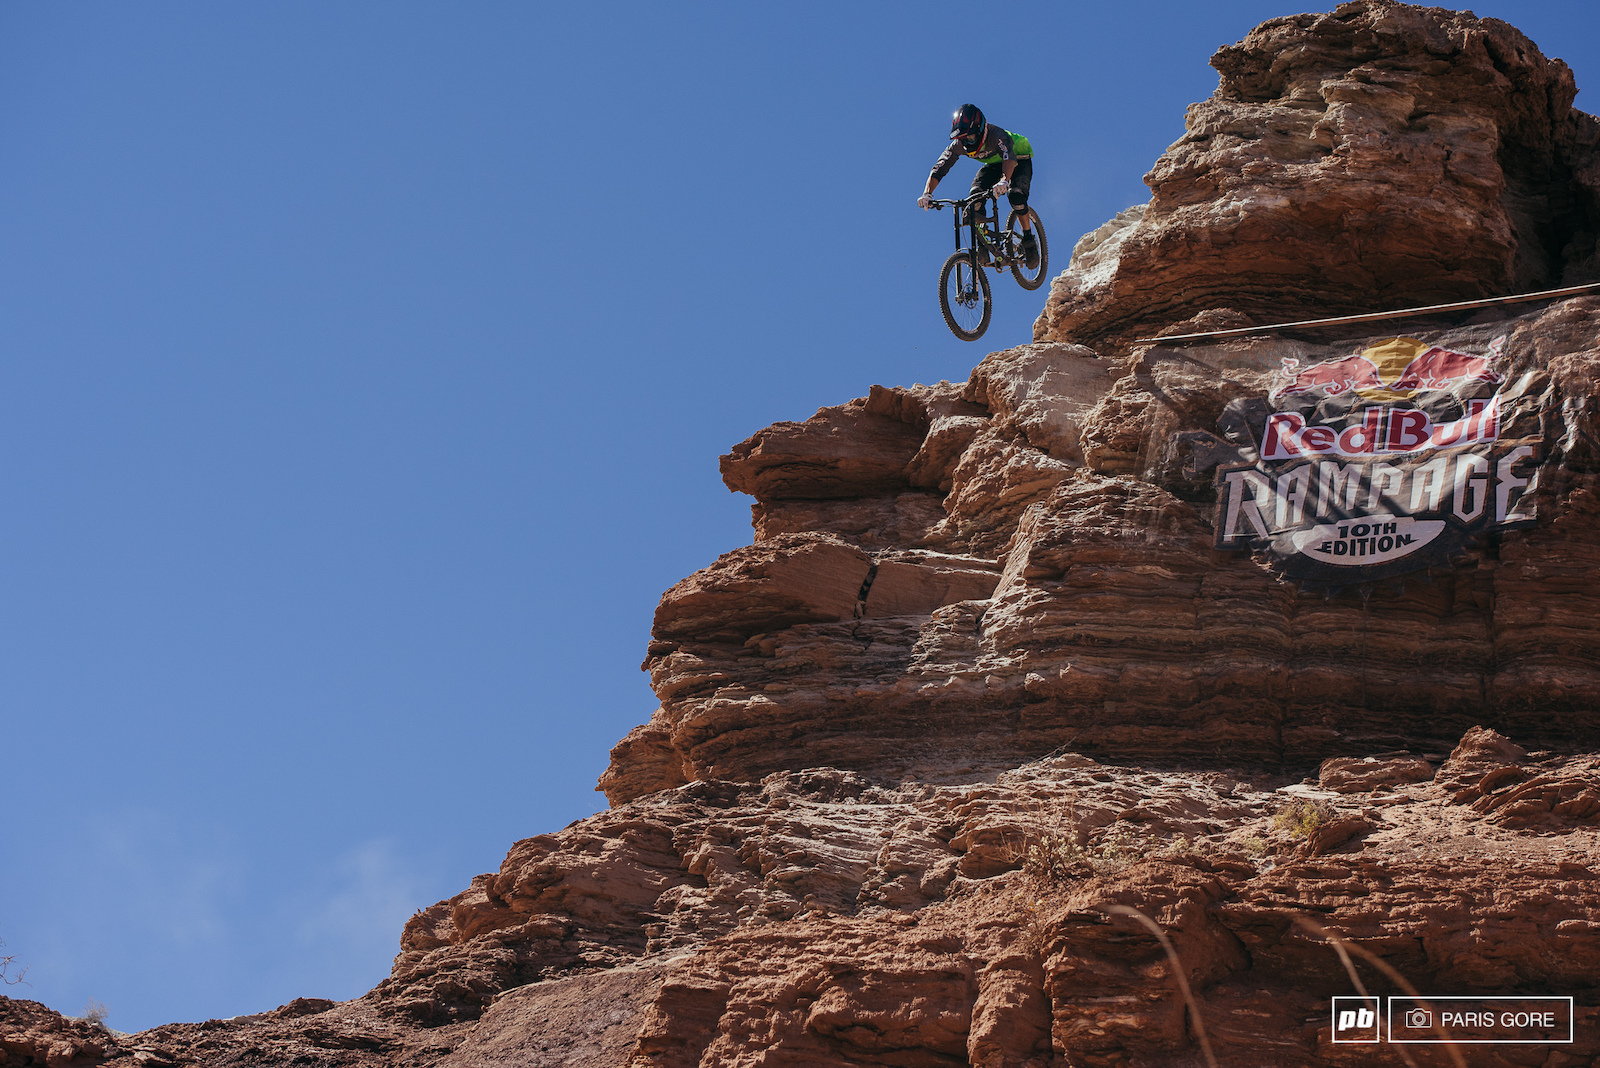 James Doerfling sending it off one of the bigger drops at rampage sticking the landing.